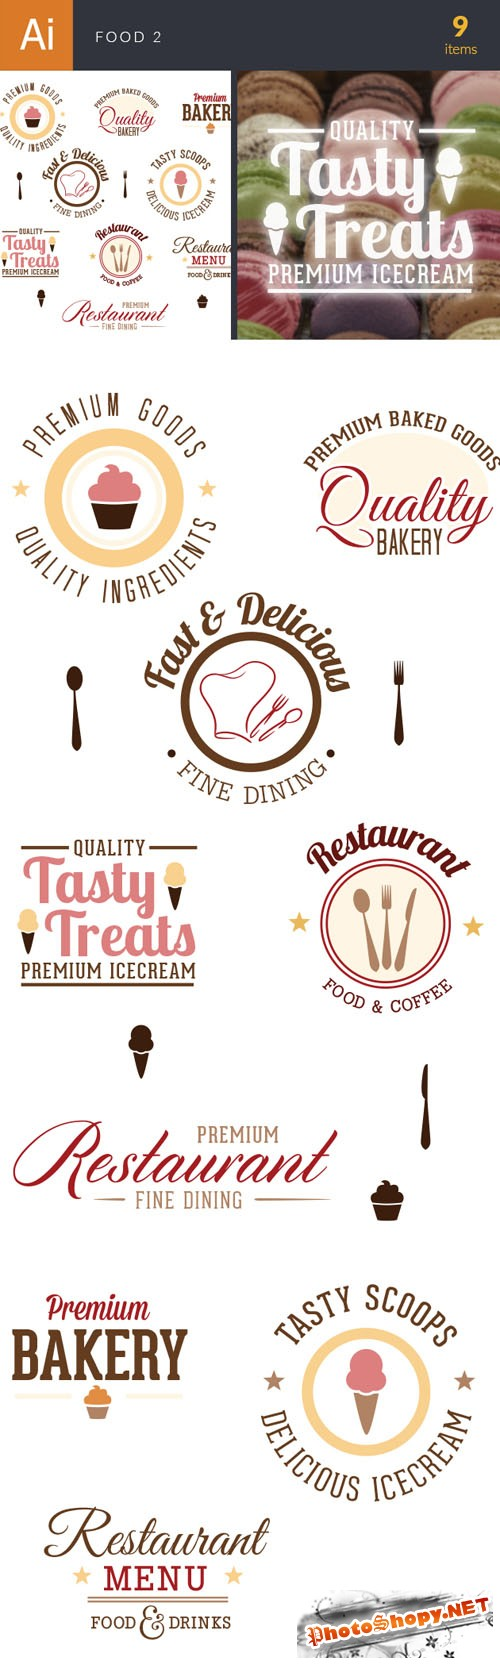 Food Typographic Vector Illustrations Pack 2